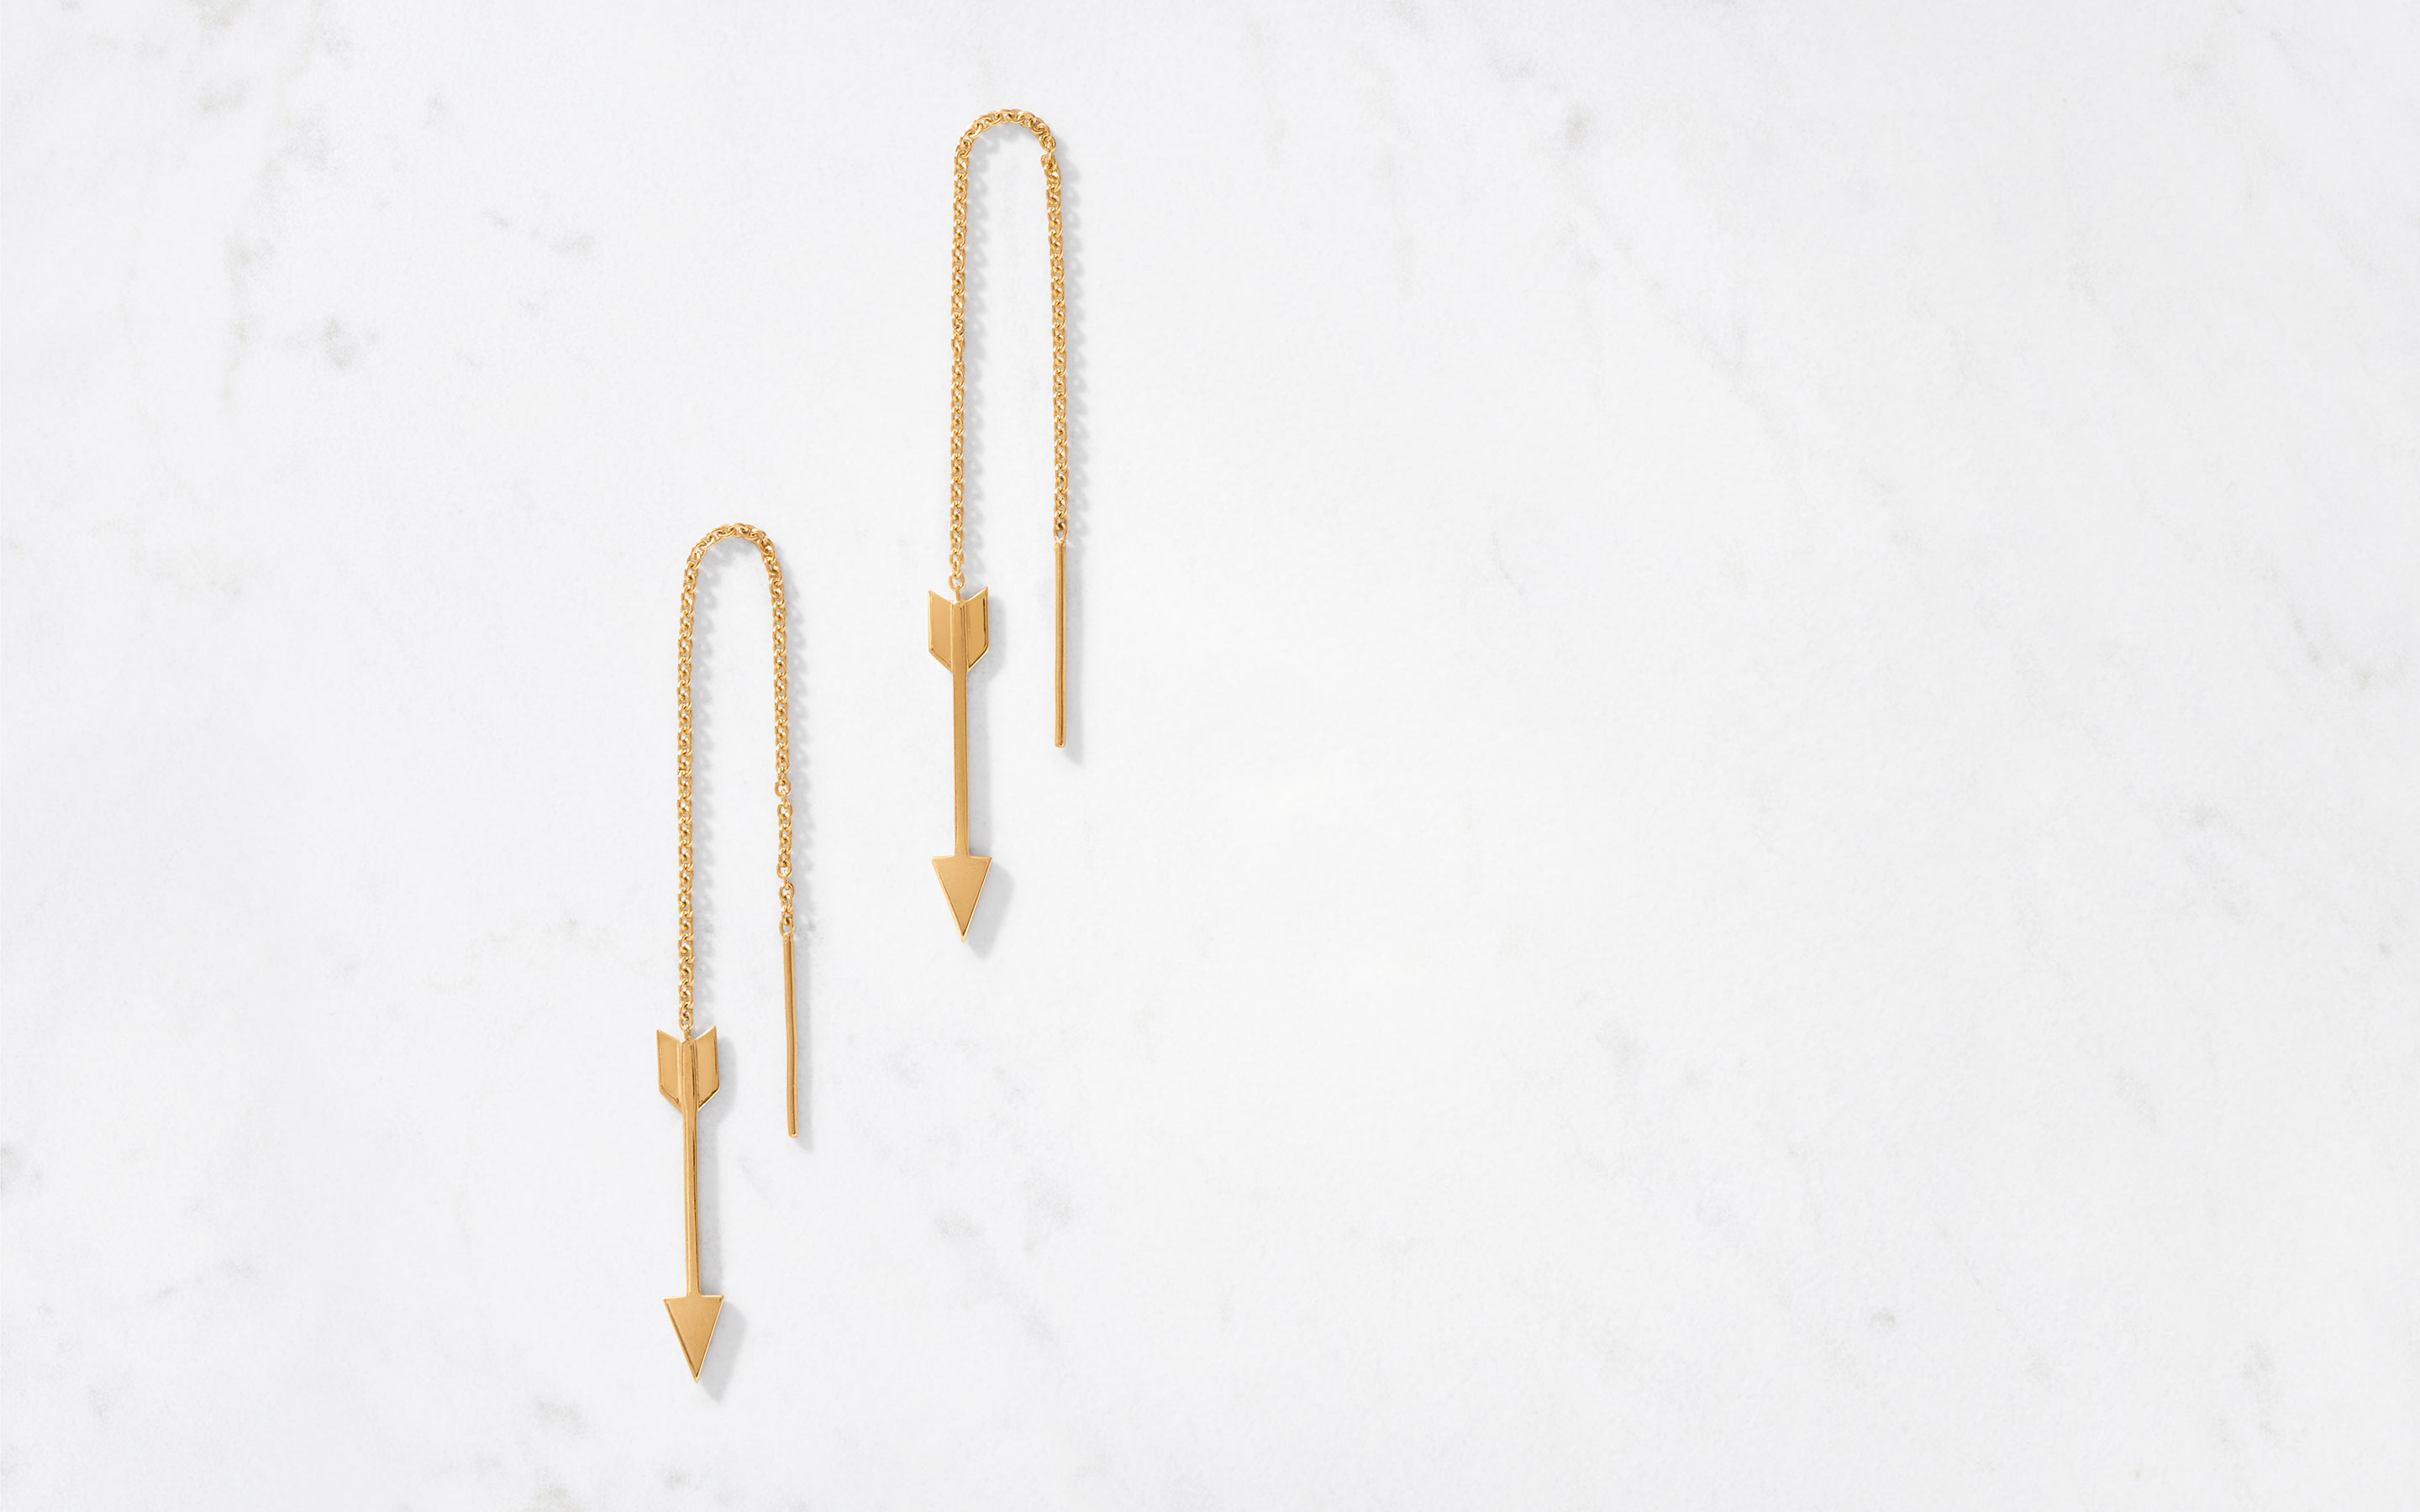 sleek threader earrings in arrow shape made of 22 karat gold